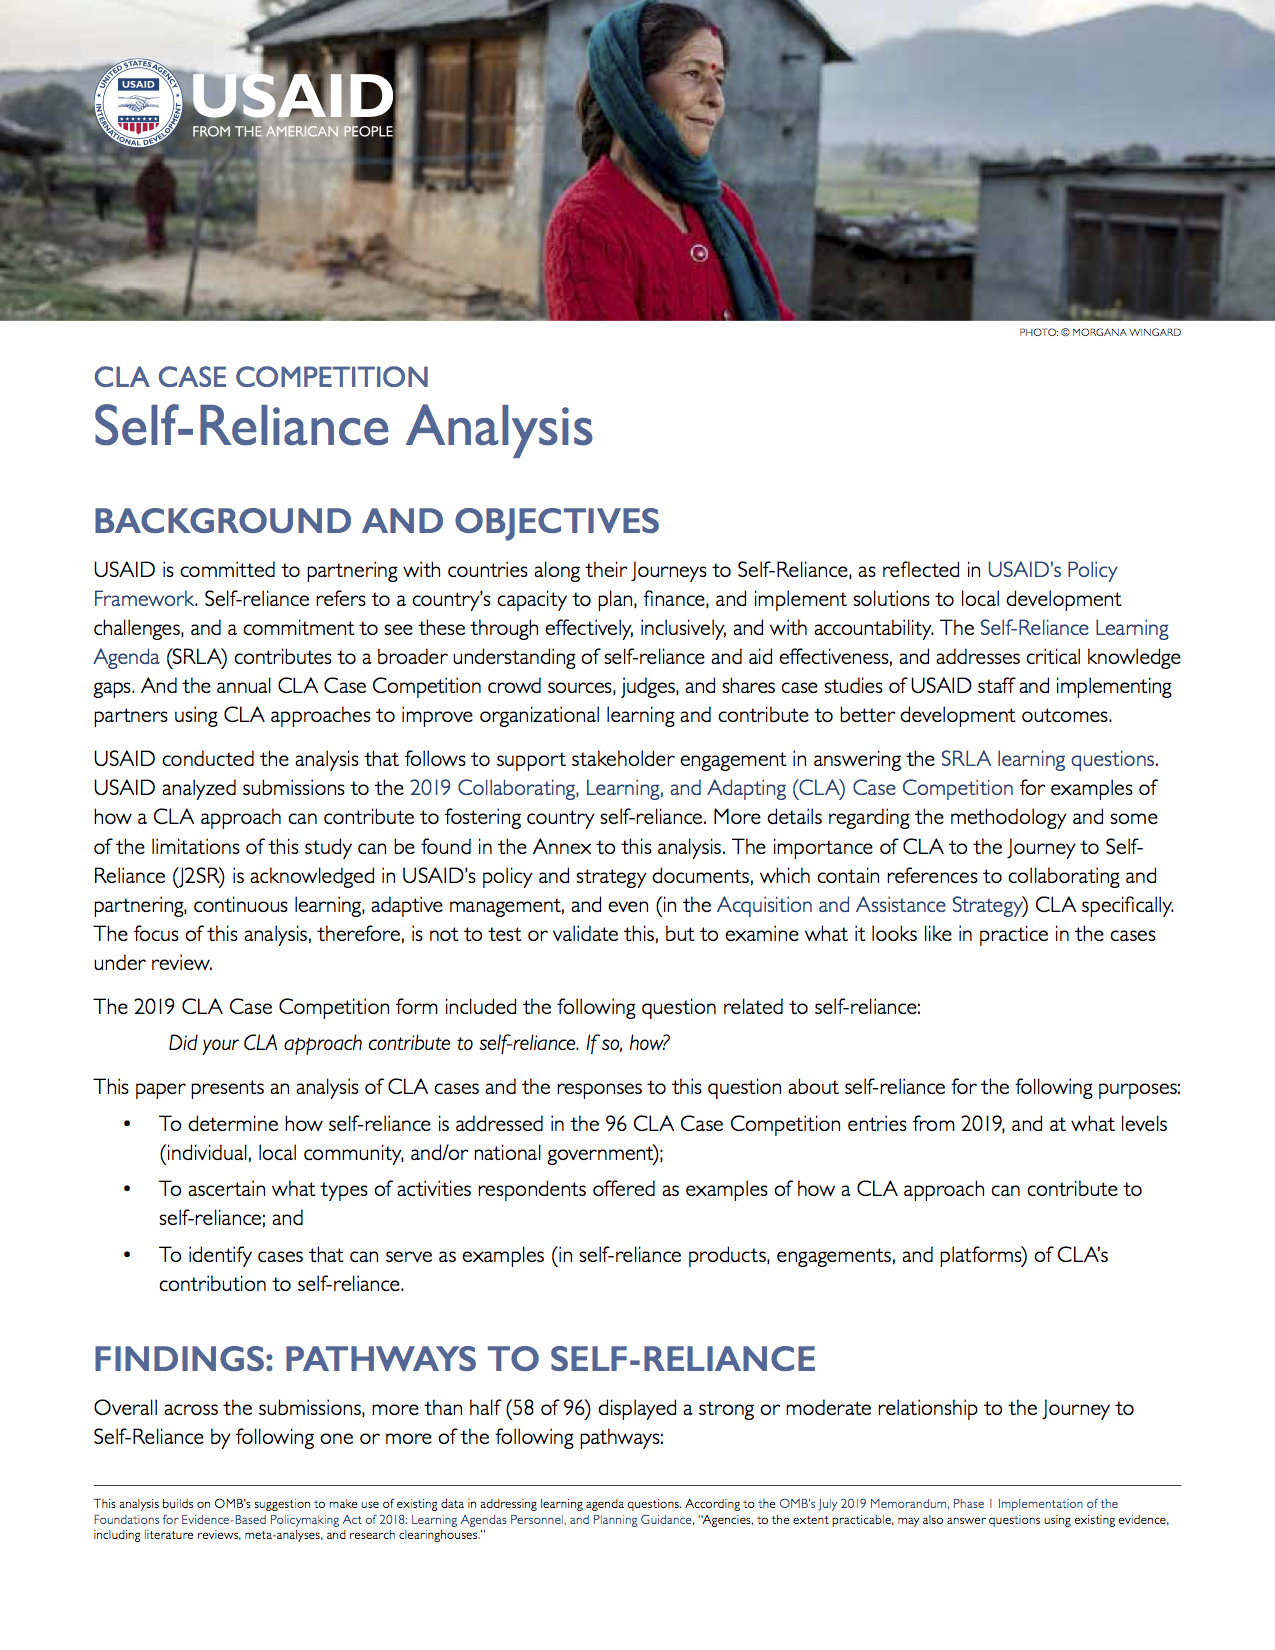 CLA Case Competition Self-Reliance Analysis